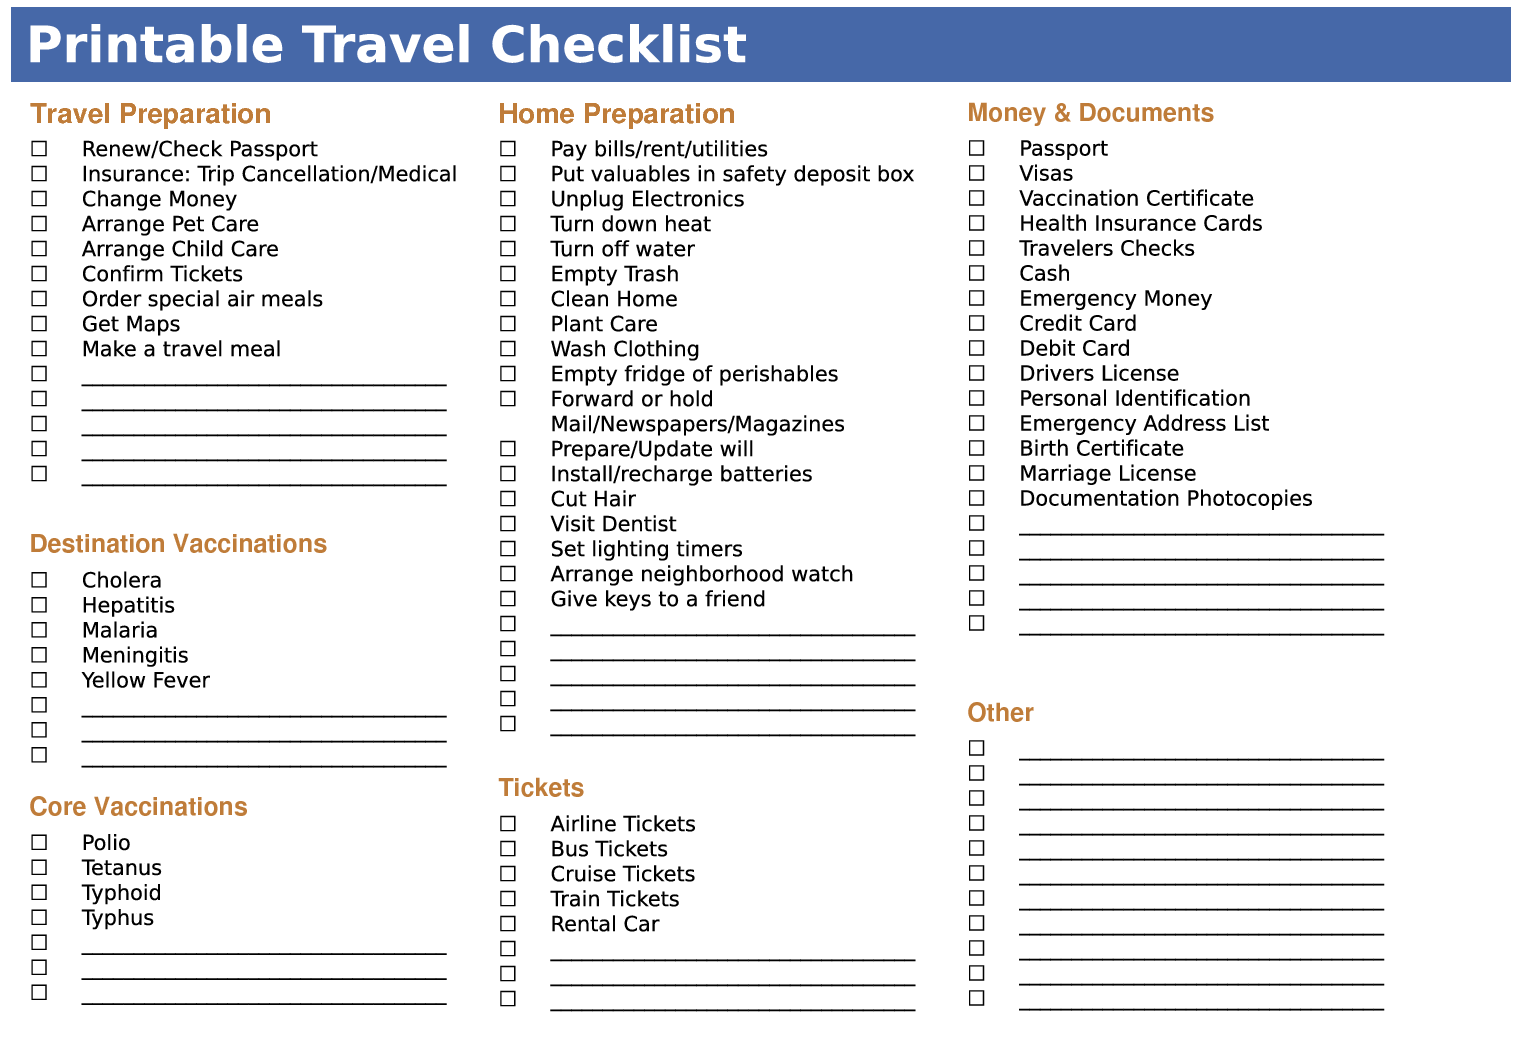 7 Images of Printable Travel Checklist